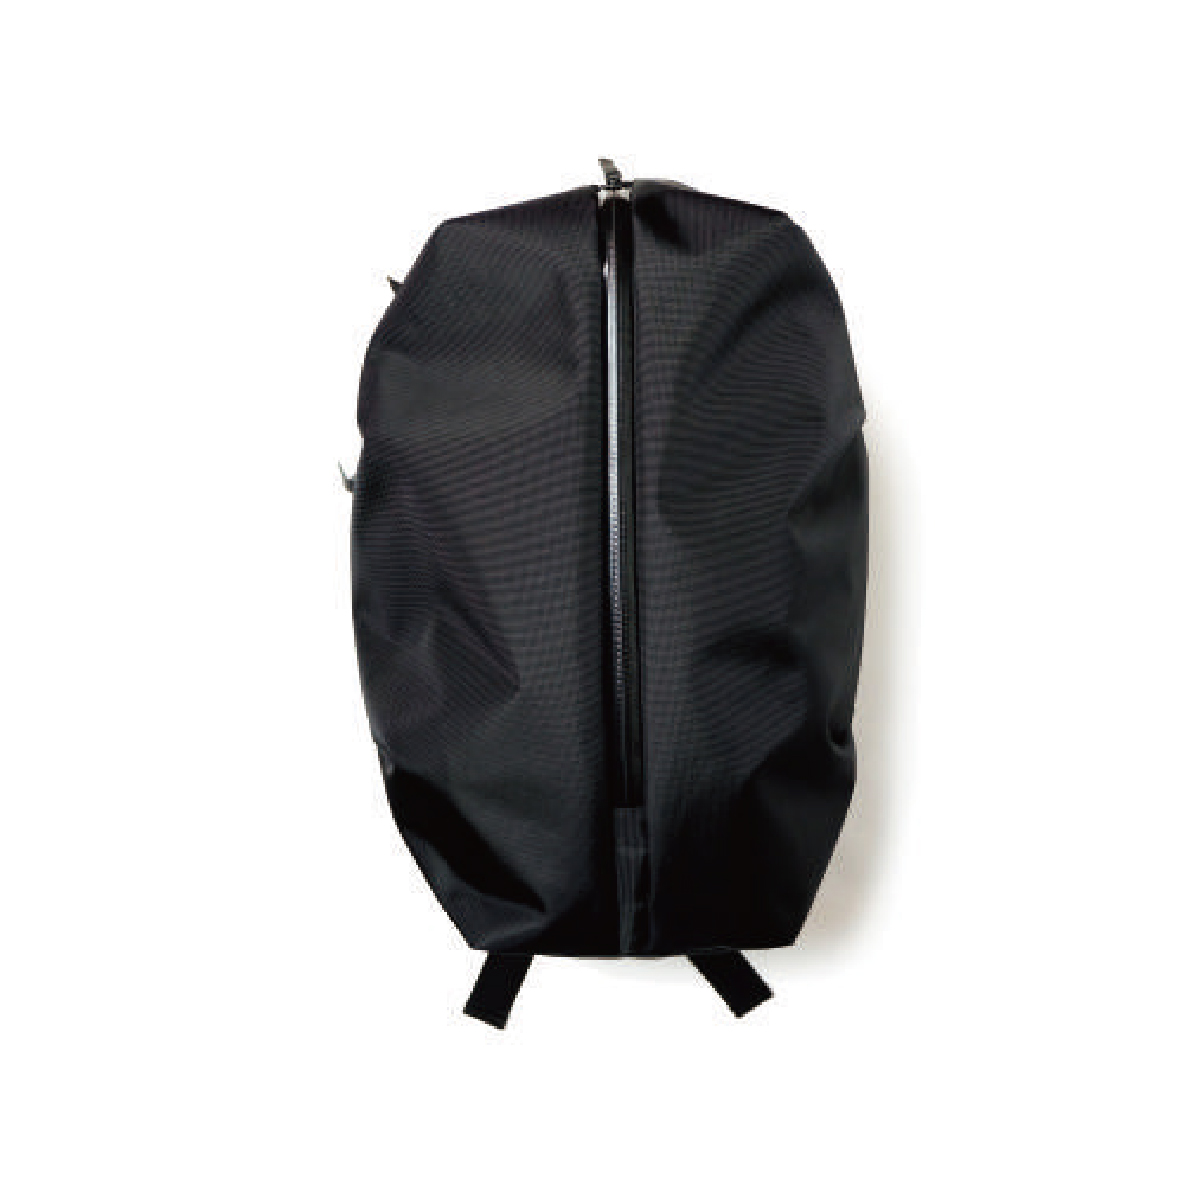 LIVERAL Egg Pack S Black series バックパック20L L1101 【日本製】 全3種 Super water repellent / Nylon 840denier / Parafin canvas